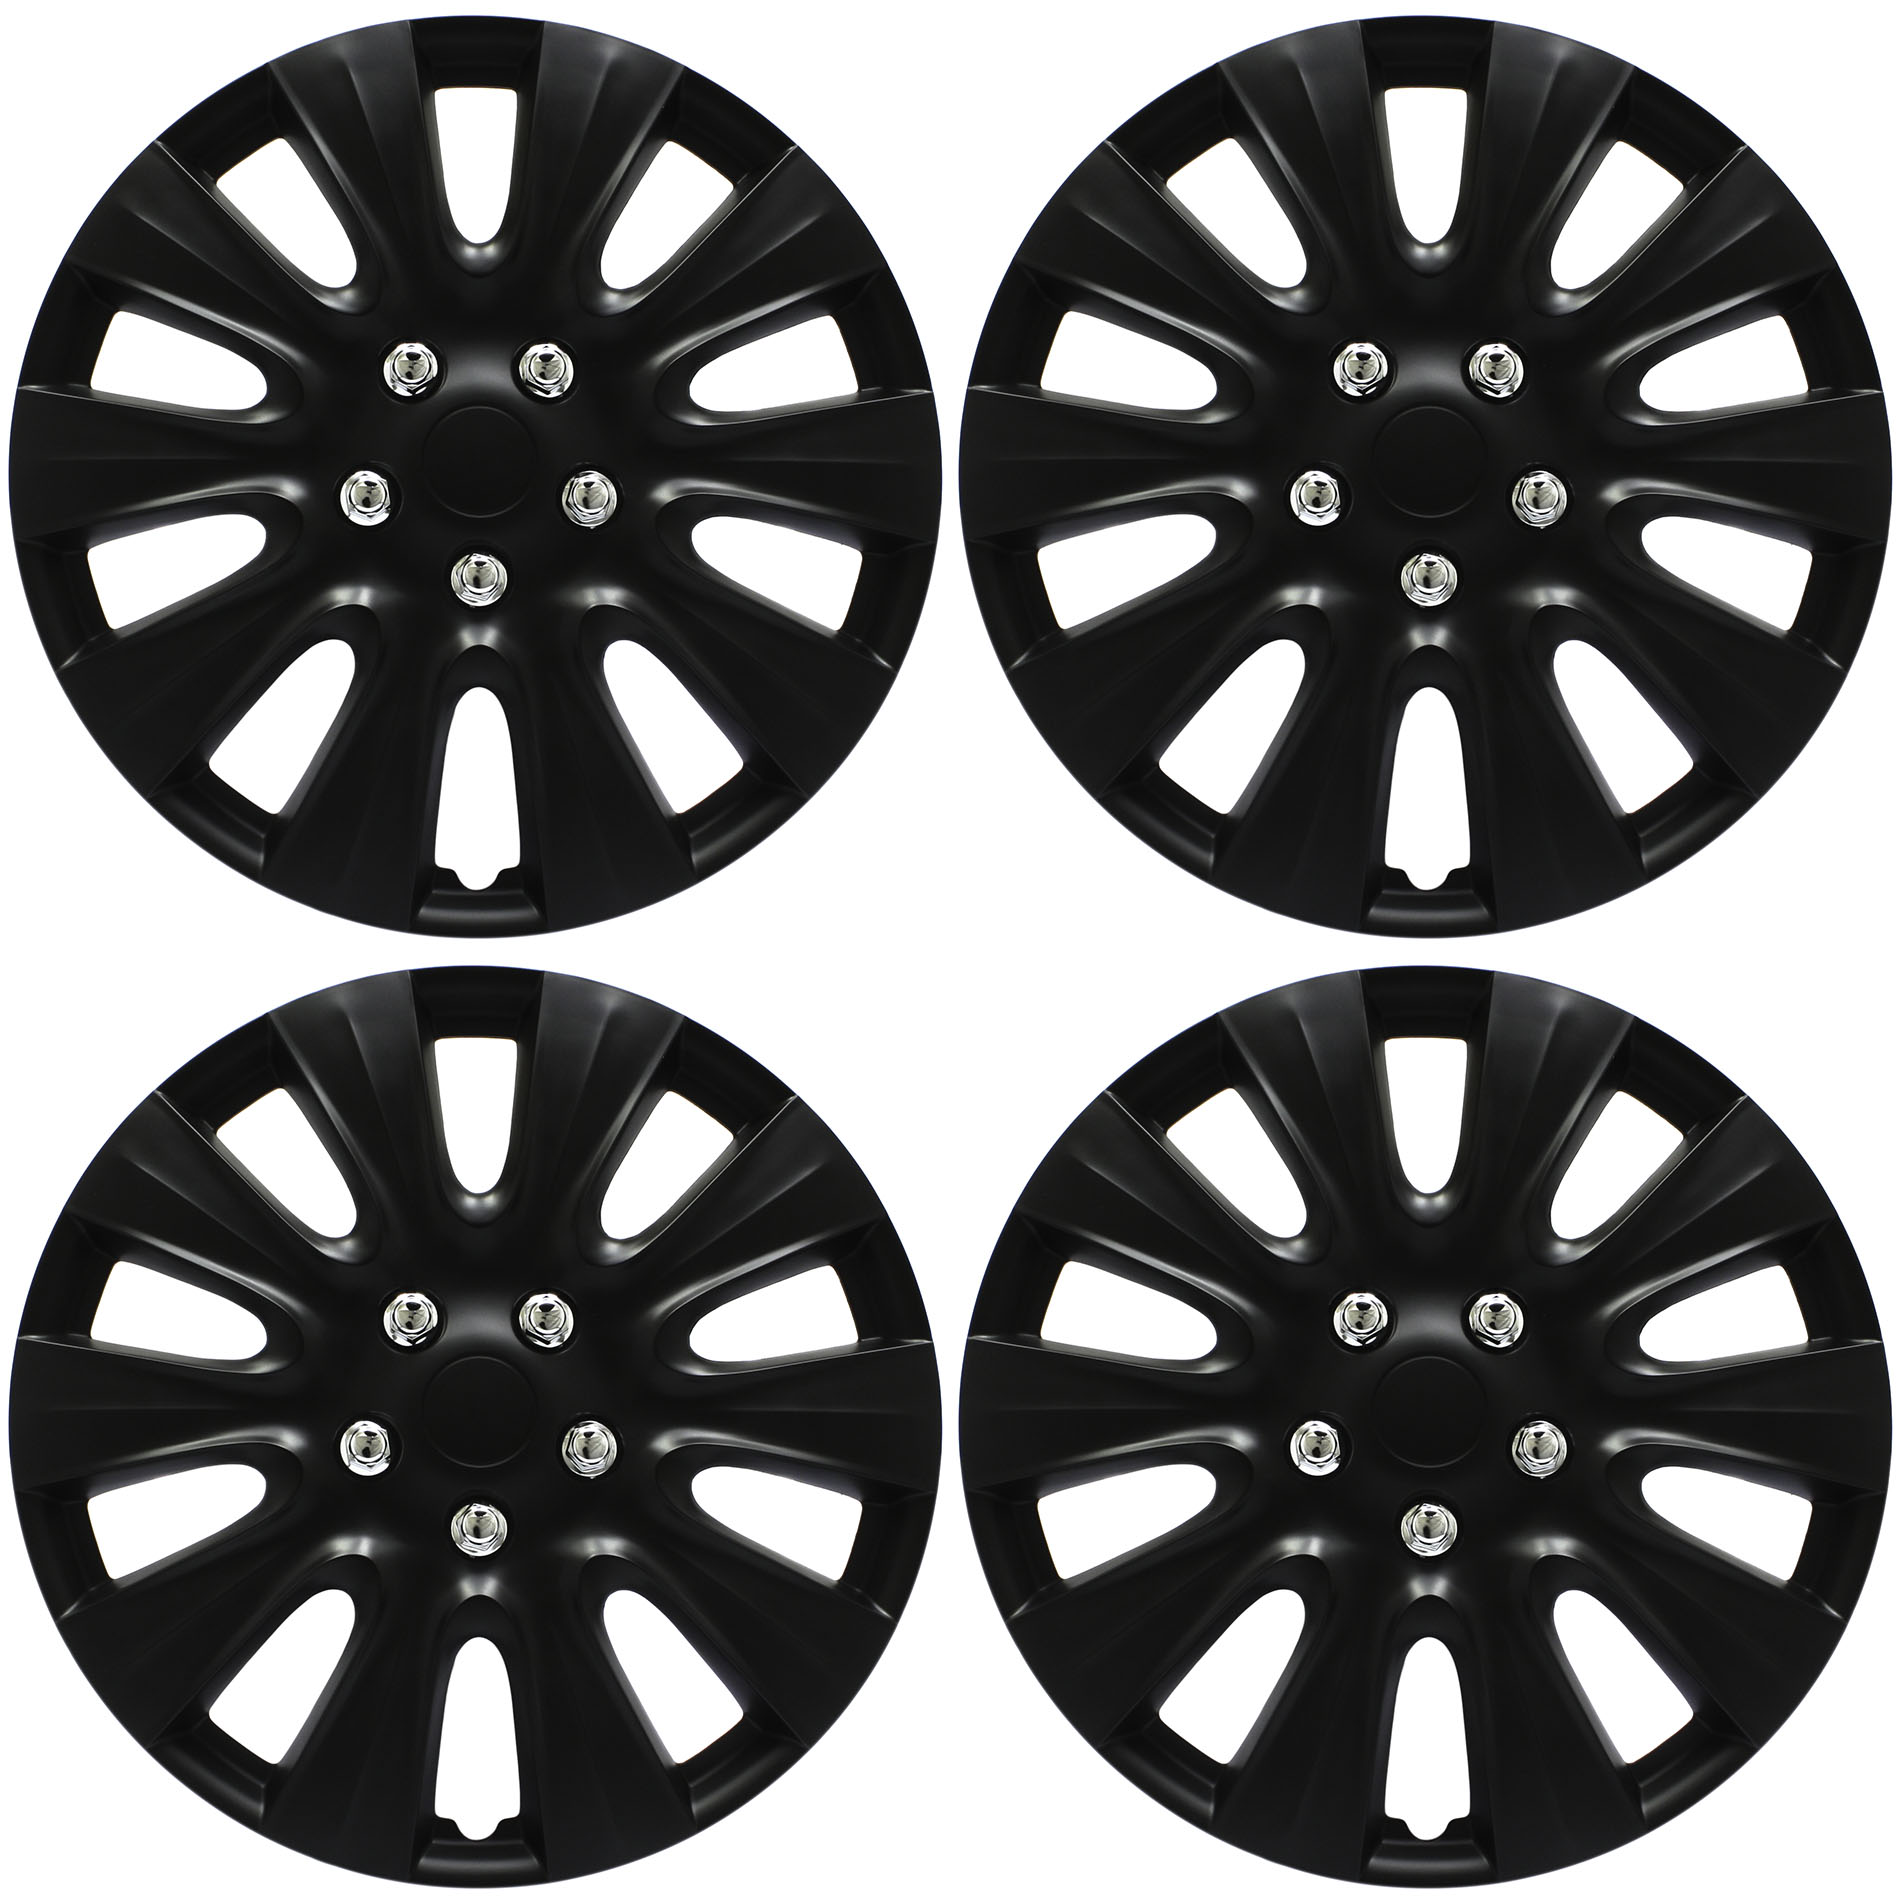 hubcaps 08 Malibu Problems cover trend set of 4 only fits 17 inch wheels that